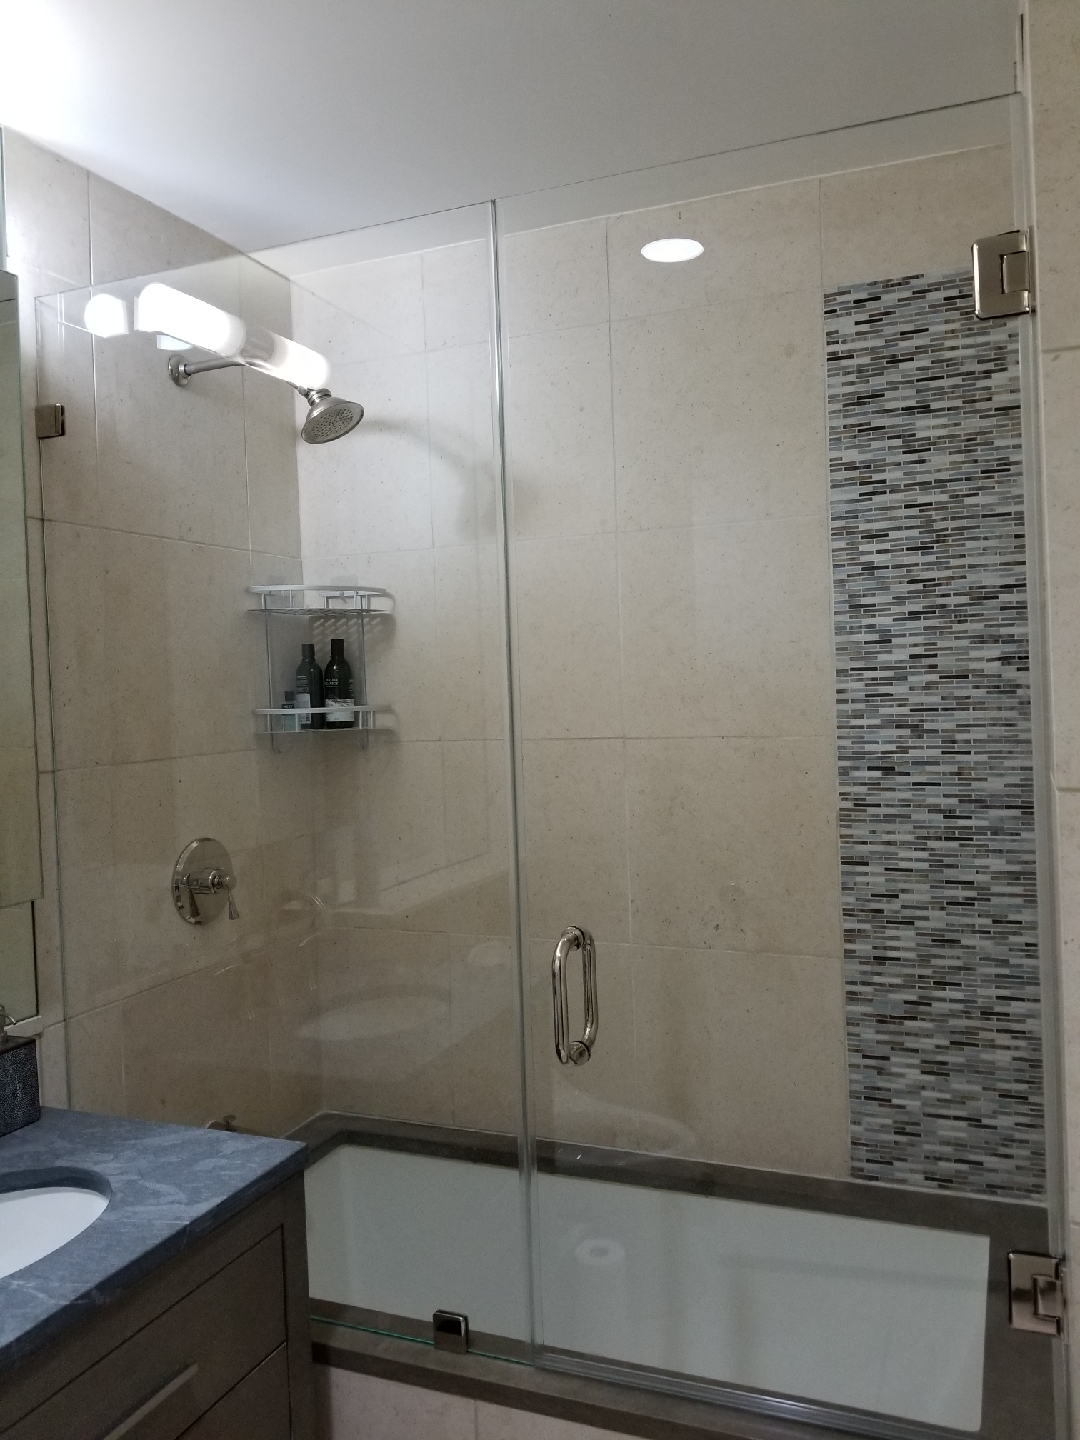 FRAMELESS SHOWER DOORS NY - GLASS TABLE TOPS - ANTIQUE MIRROR NYC